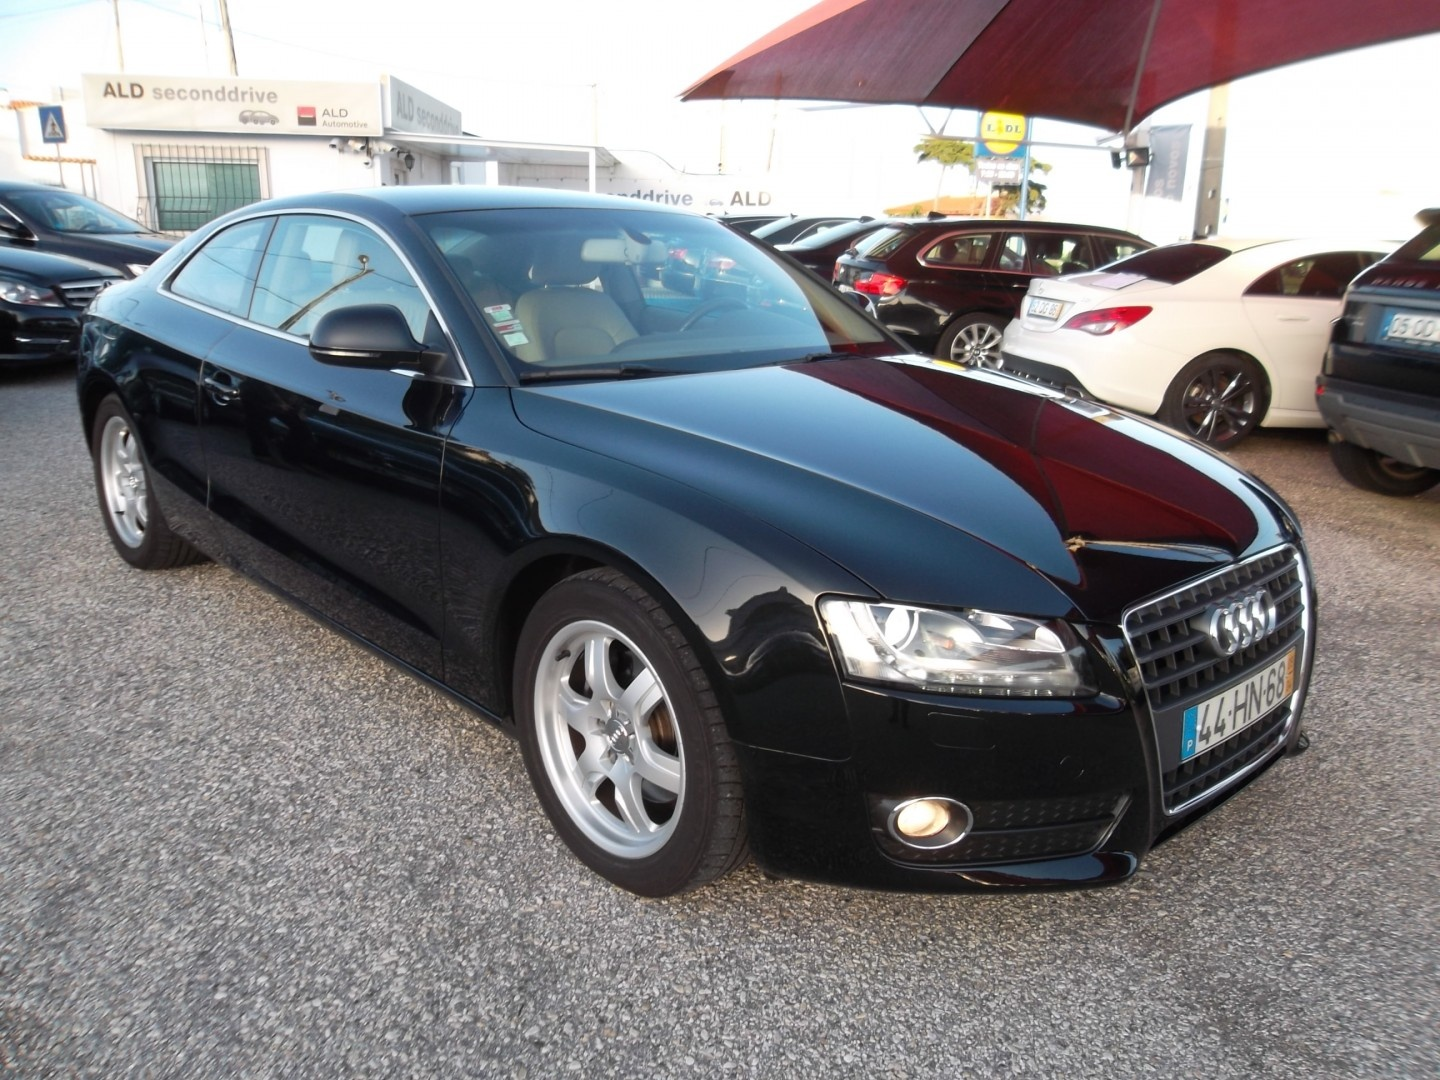 Audi A5 COUPÉ 2.0 TSFI MULTITRONIC